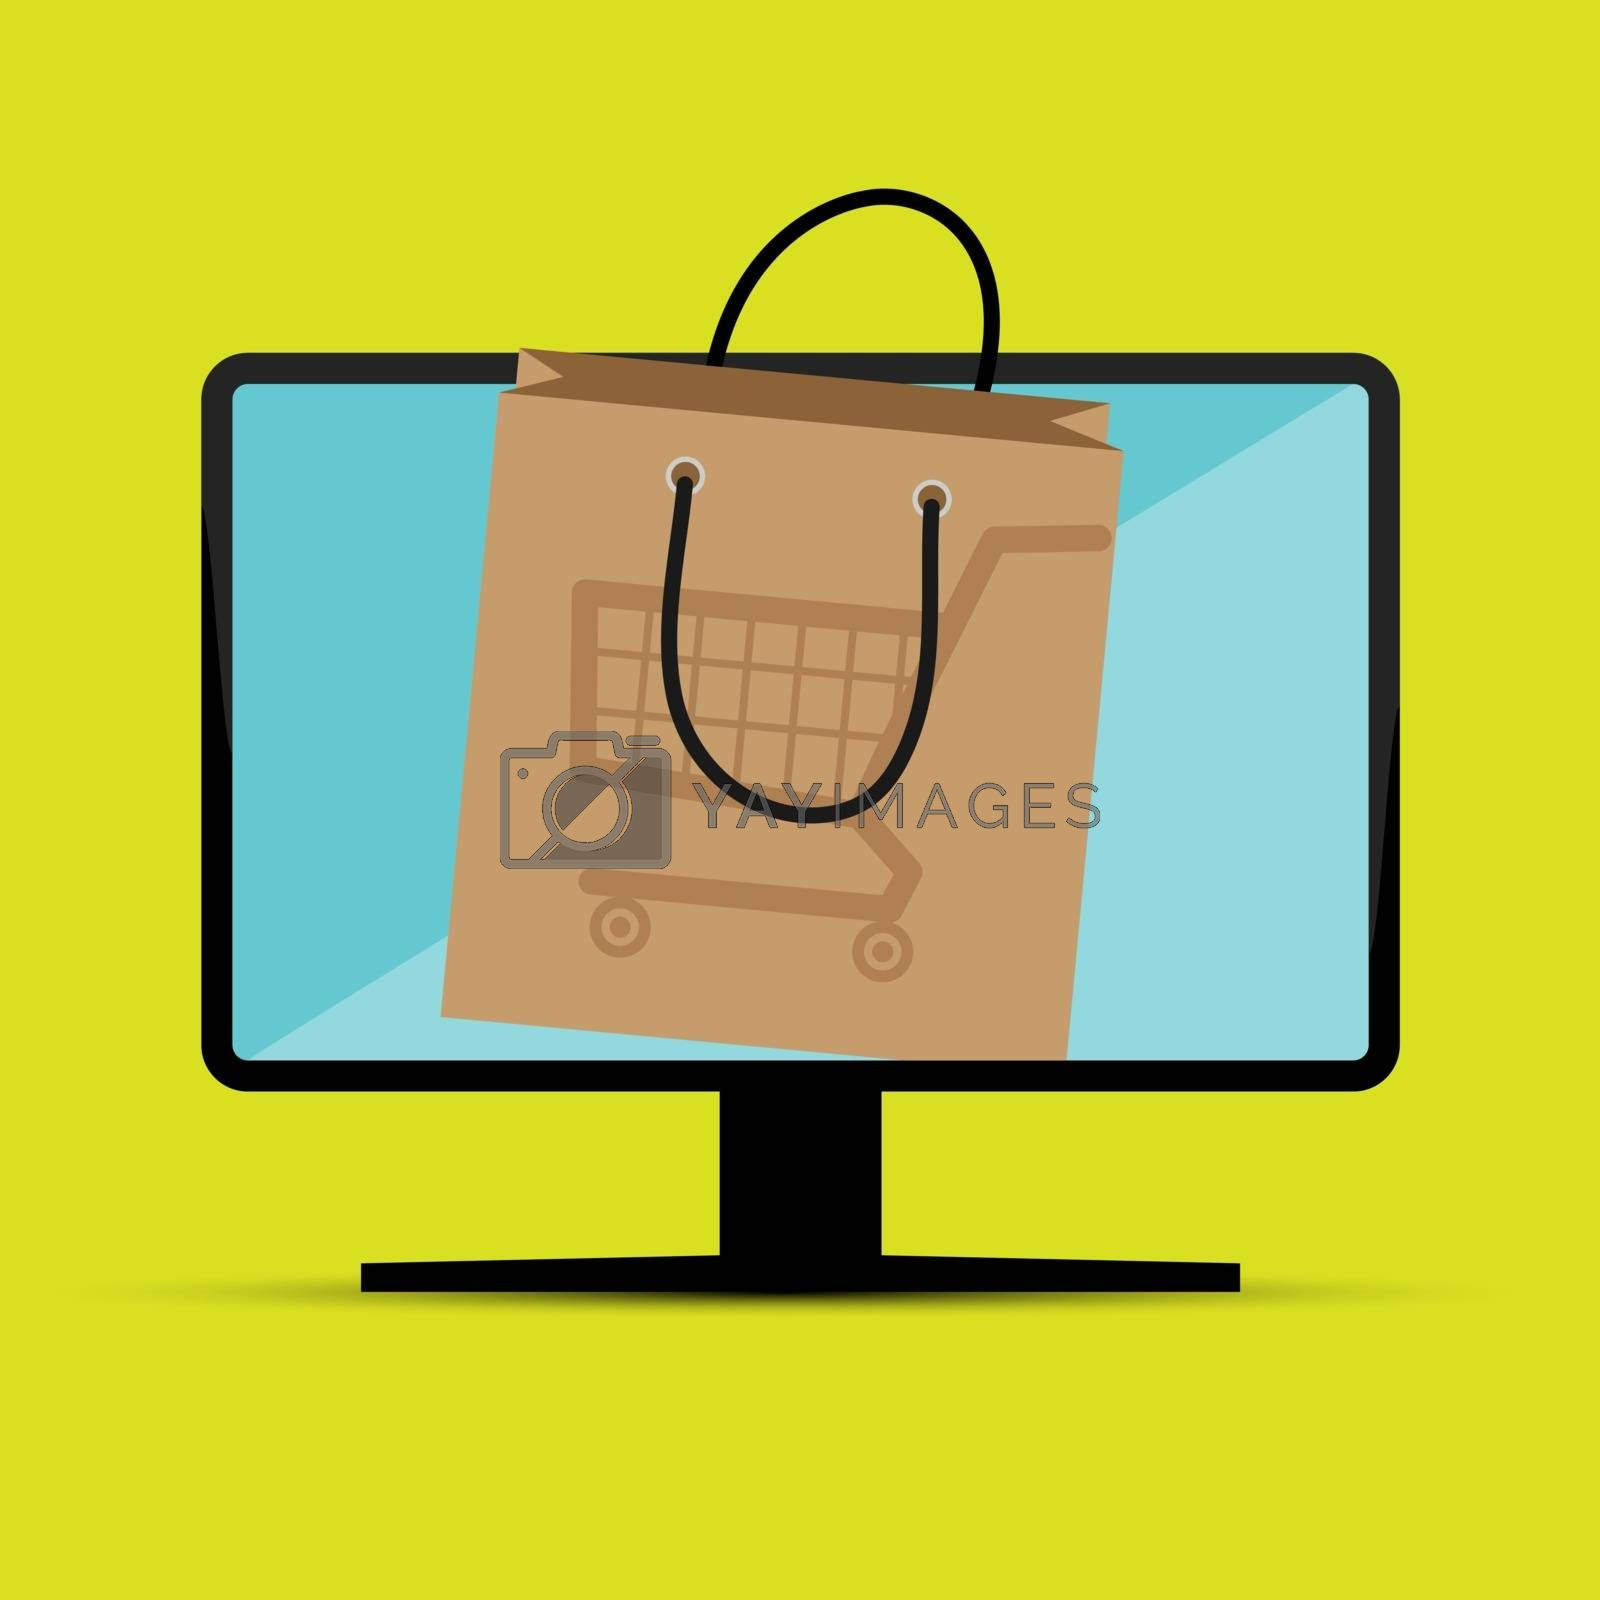 E-Commerce, online remote purchase of goods and services